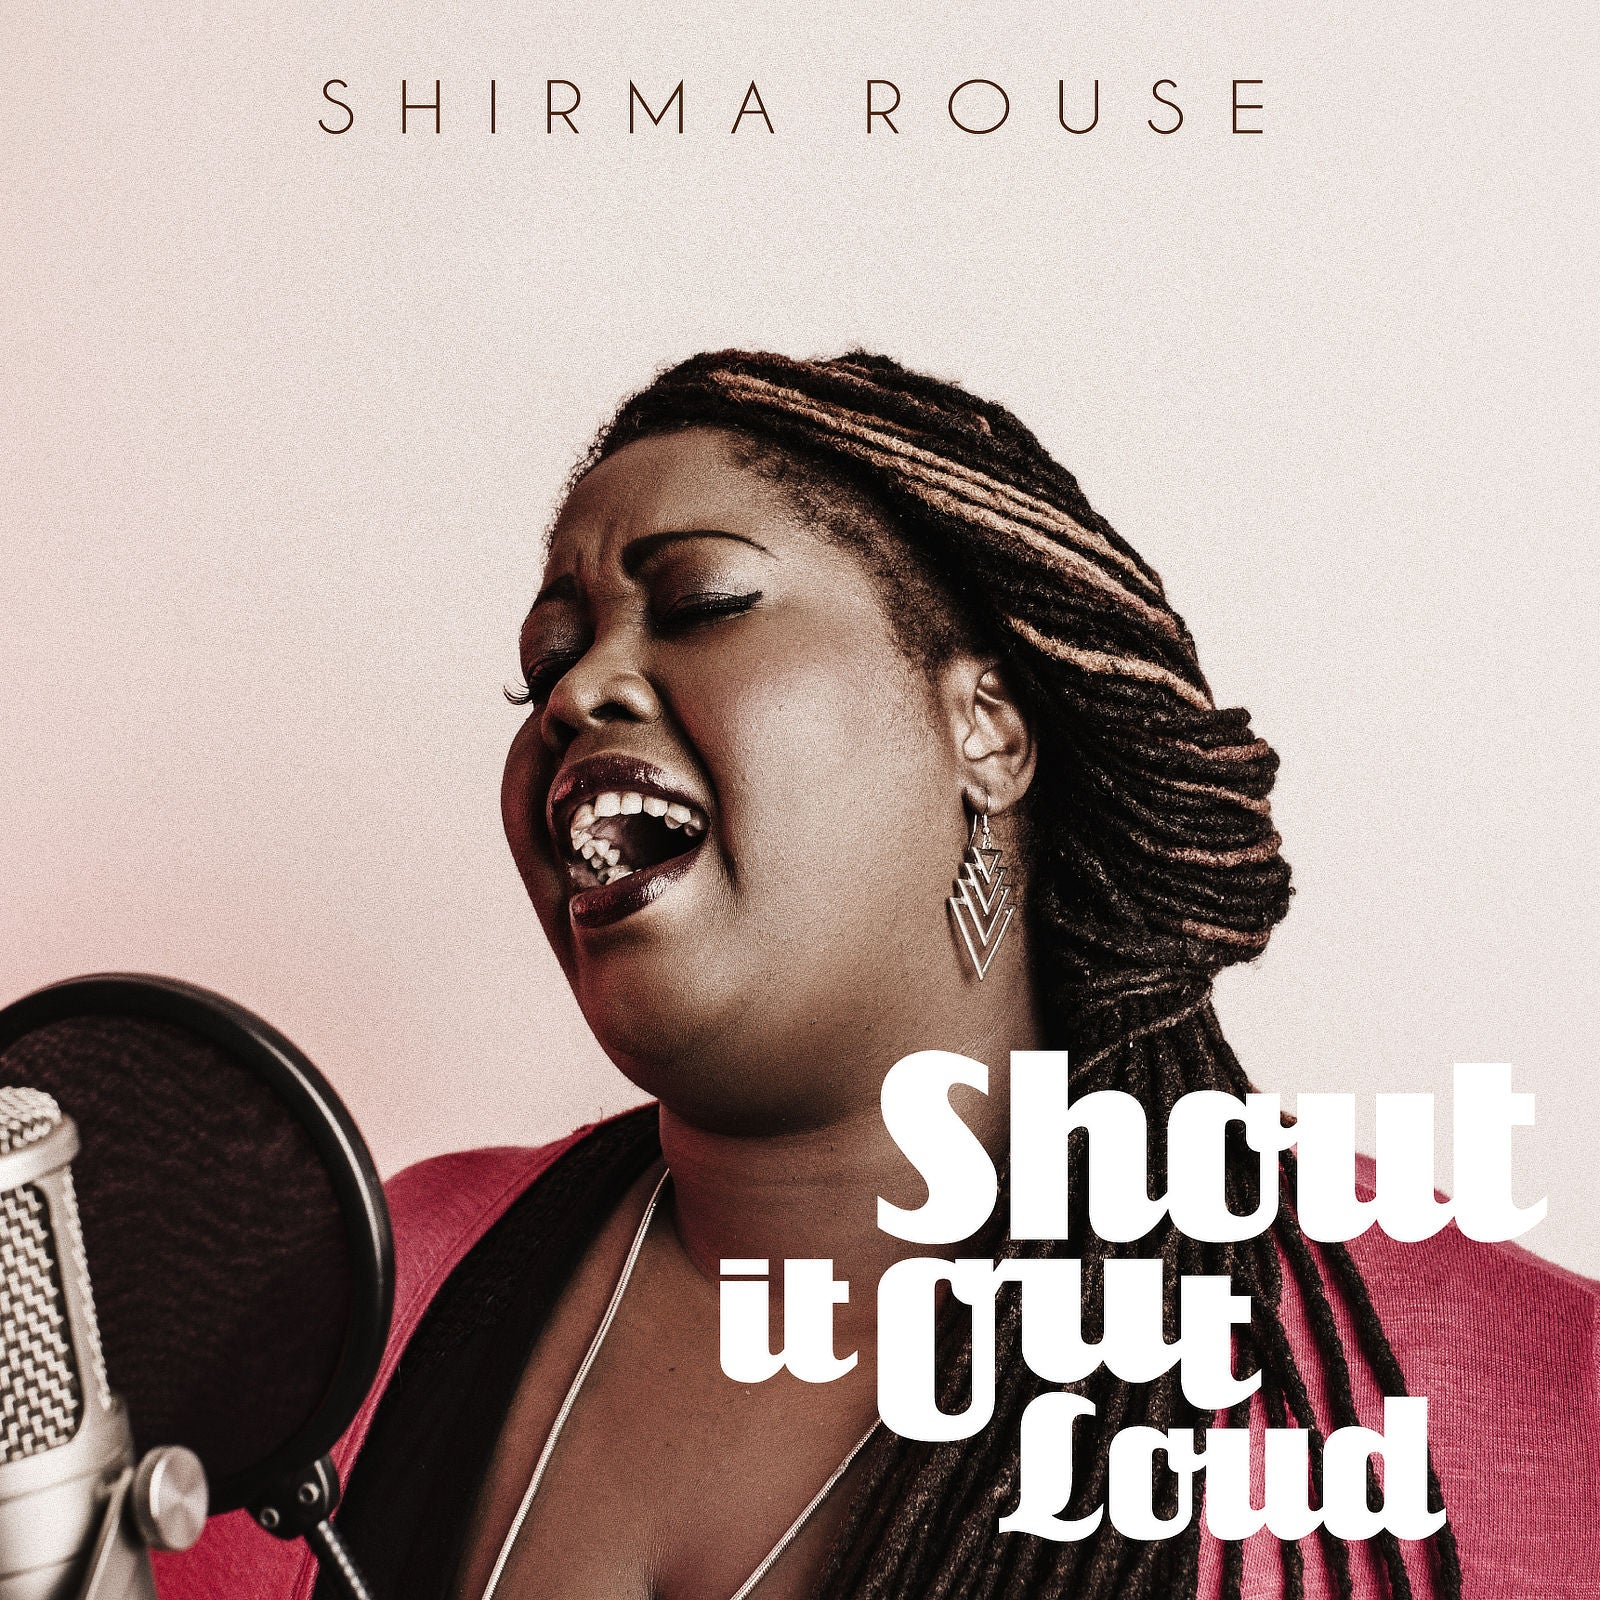 Shirma Rouse / Shout it OUt Loud